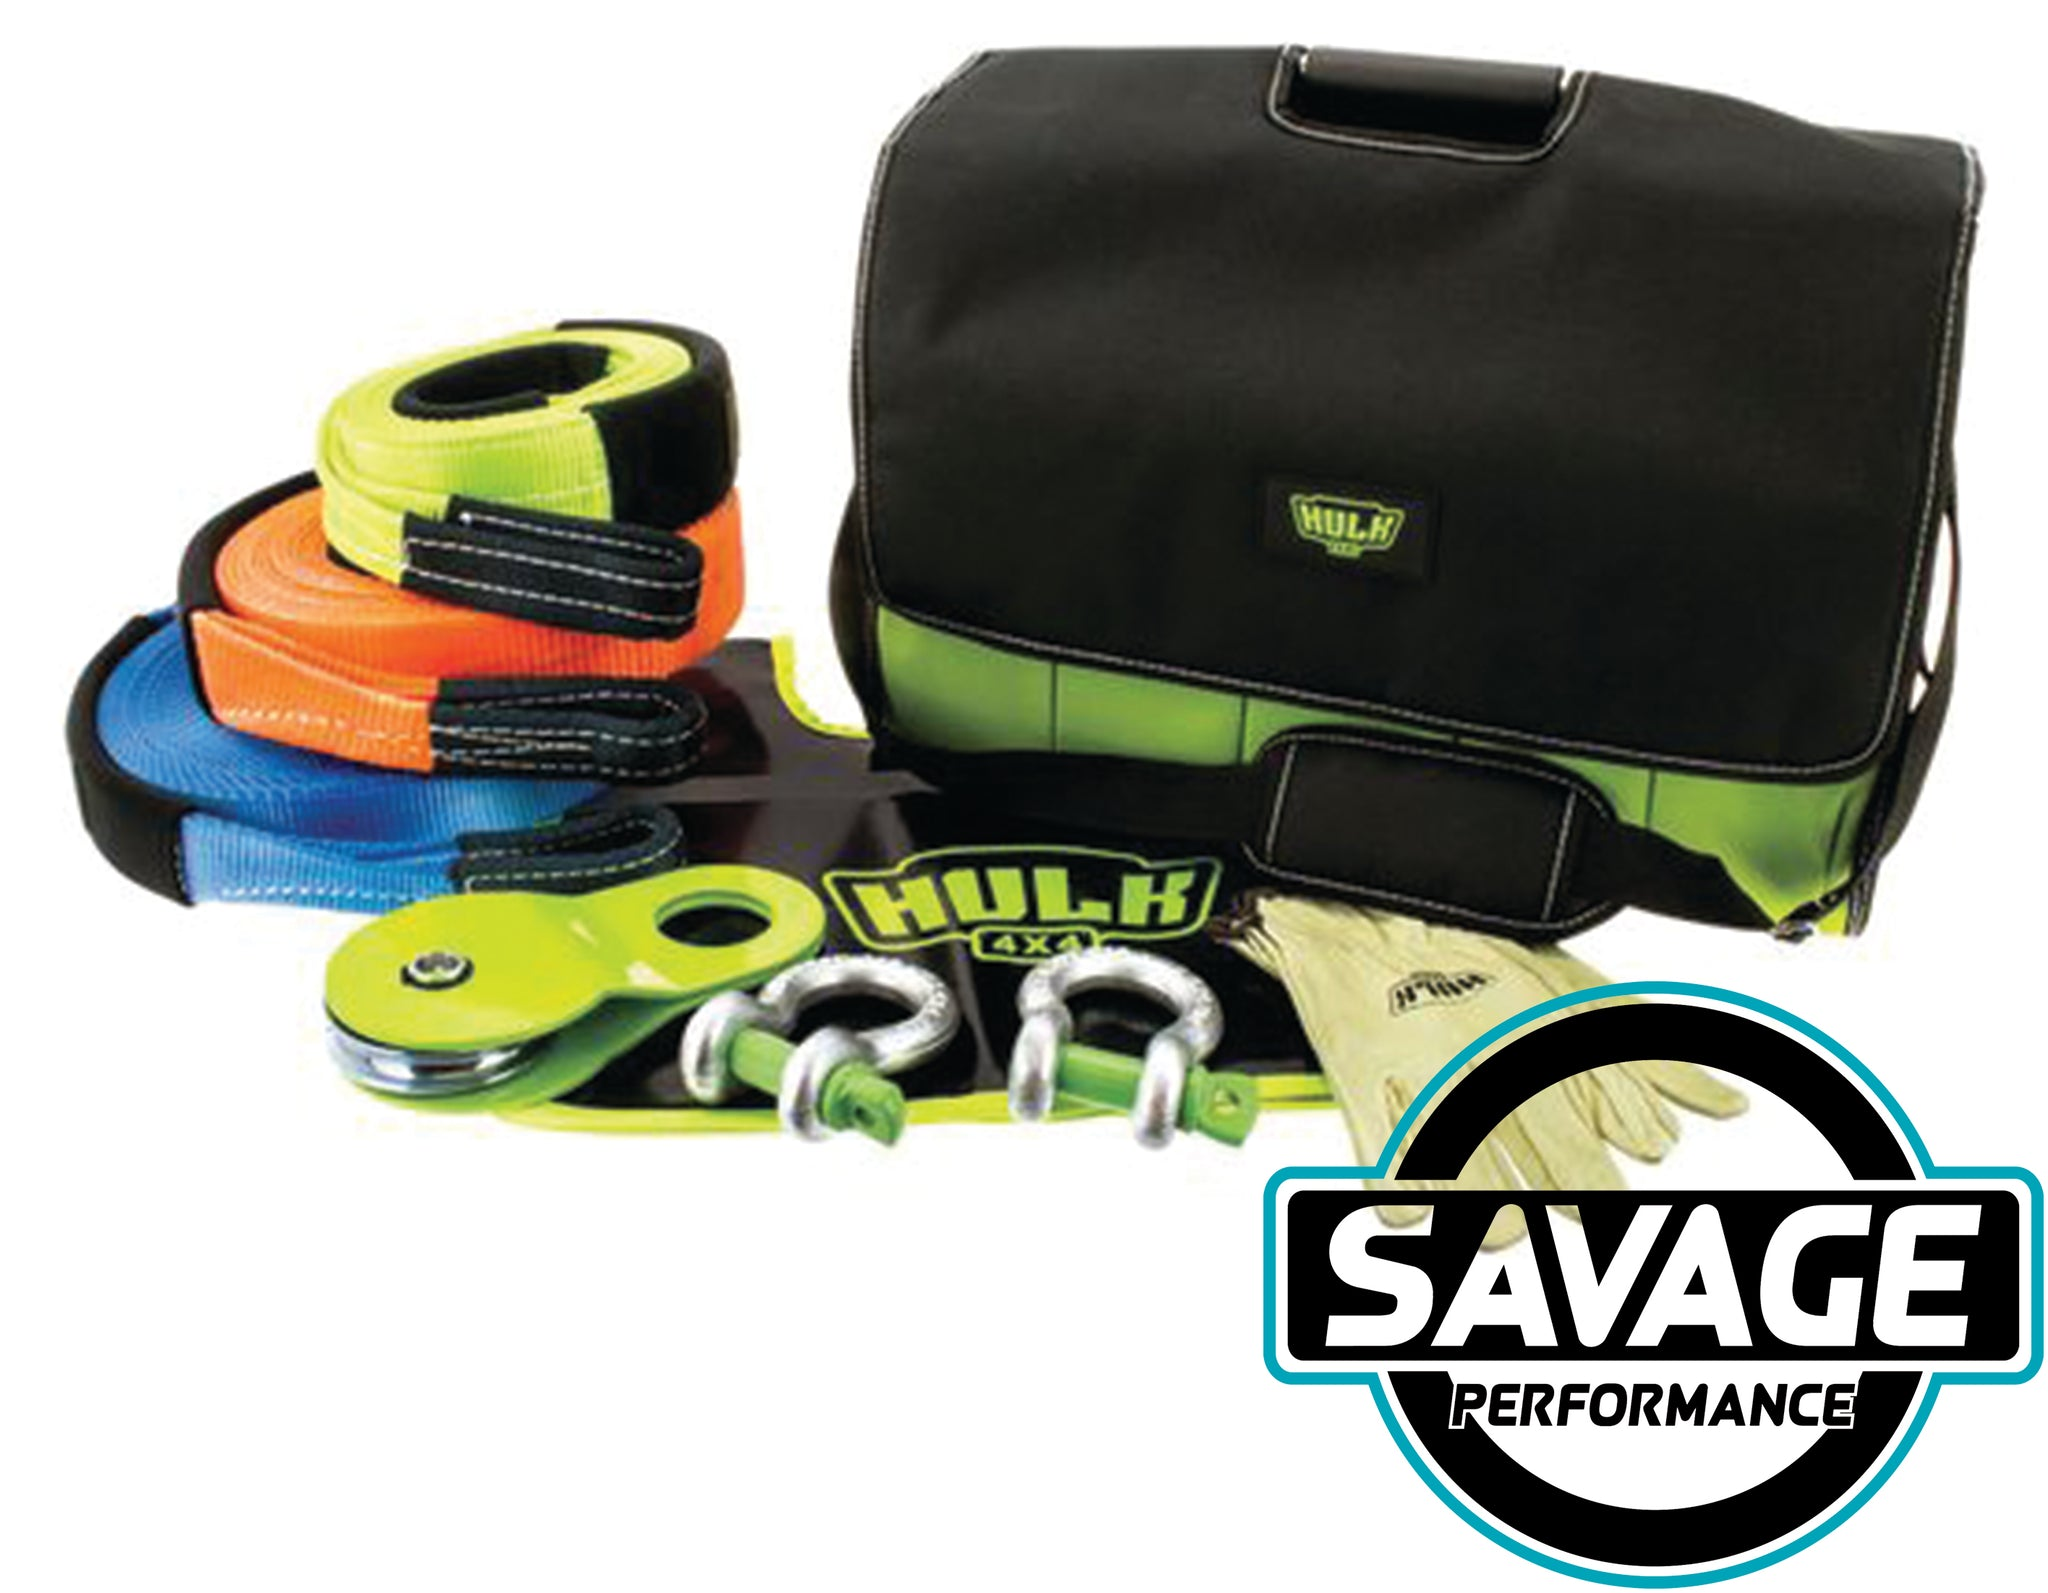 Hulk 4x4 Complete Recovery Kit *Savage Performance*